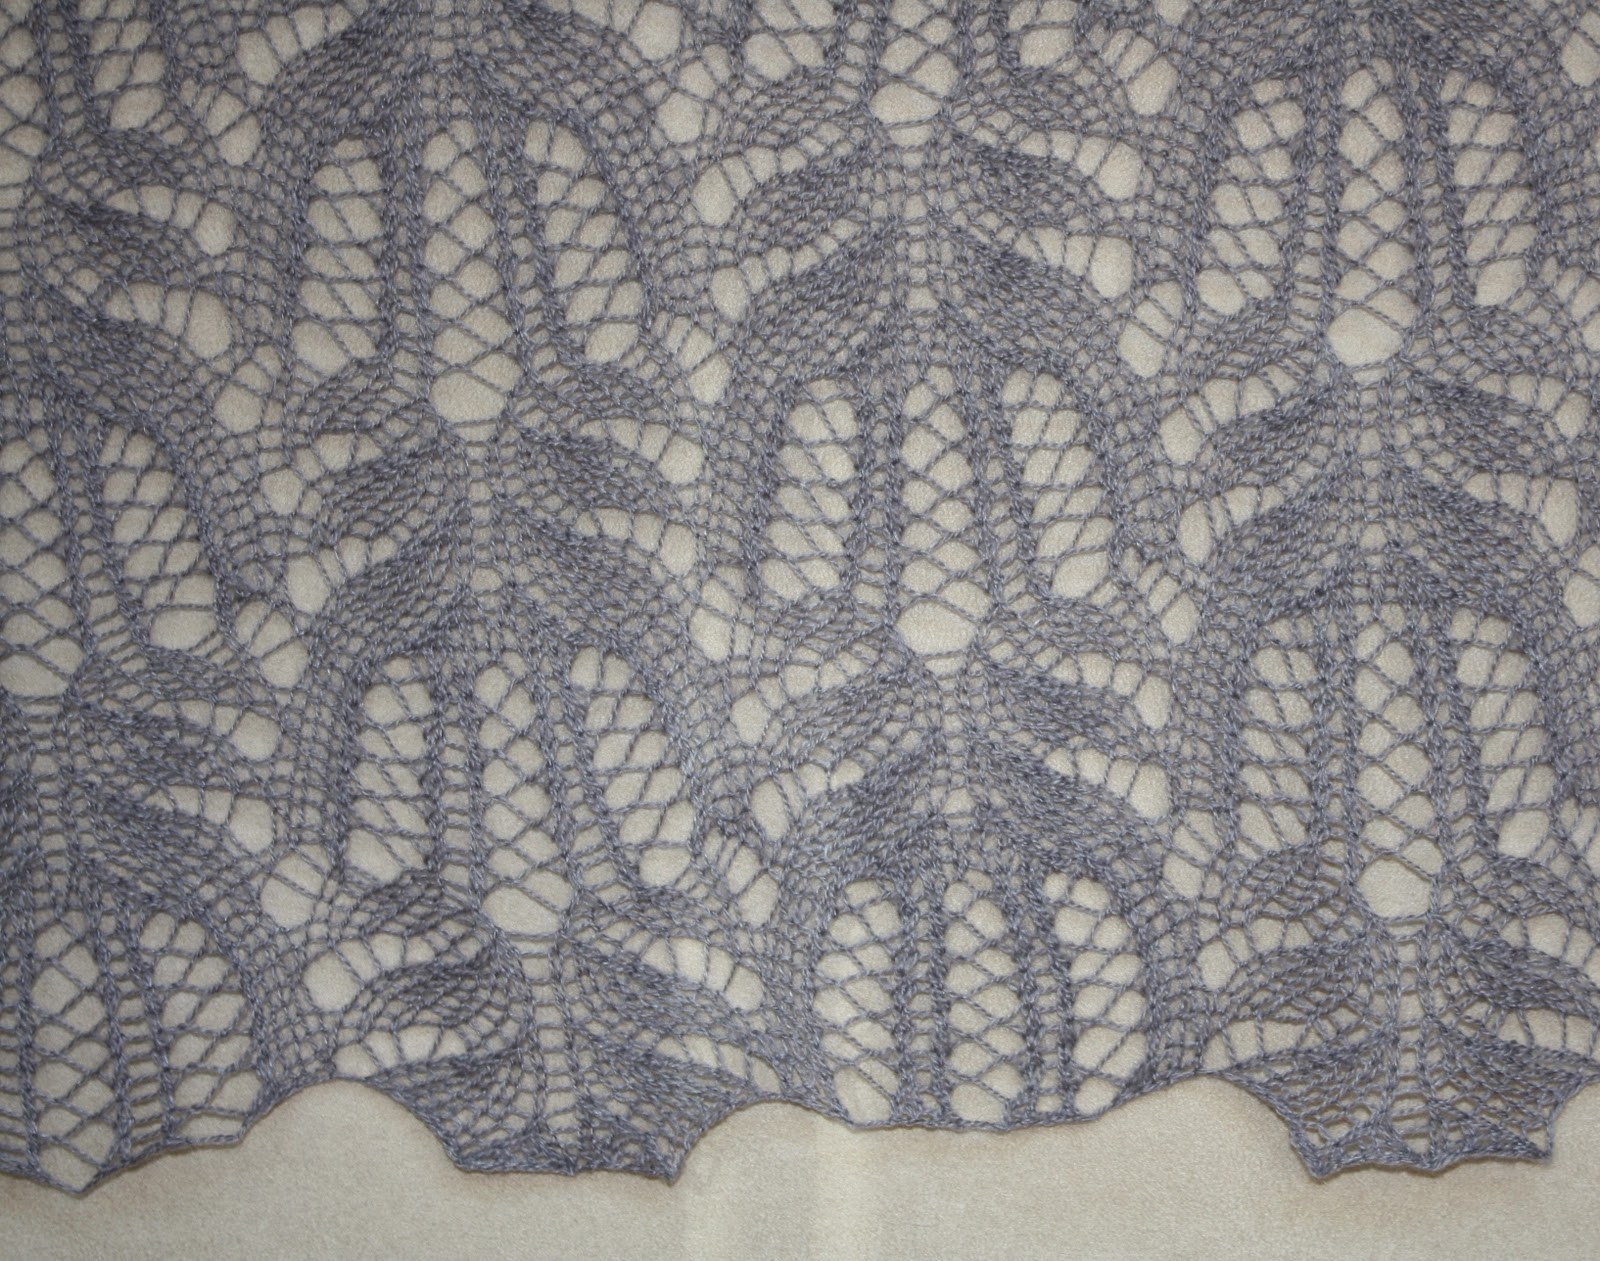 Knitting Lace Patterns Free : All Knitted Lace: Frost Flowers Lace Pattern